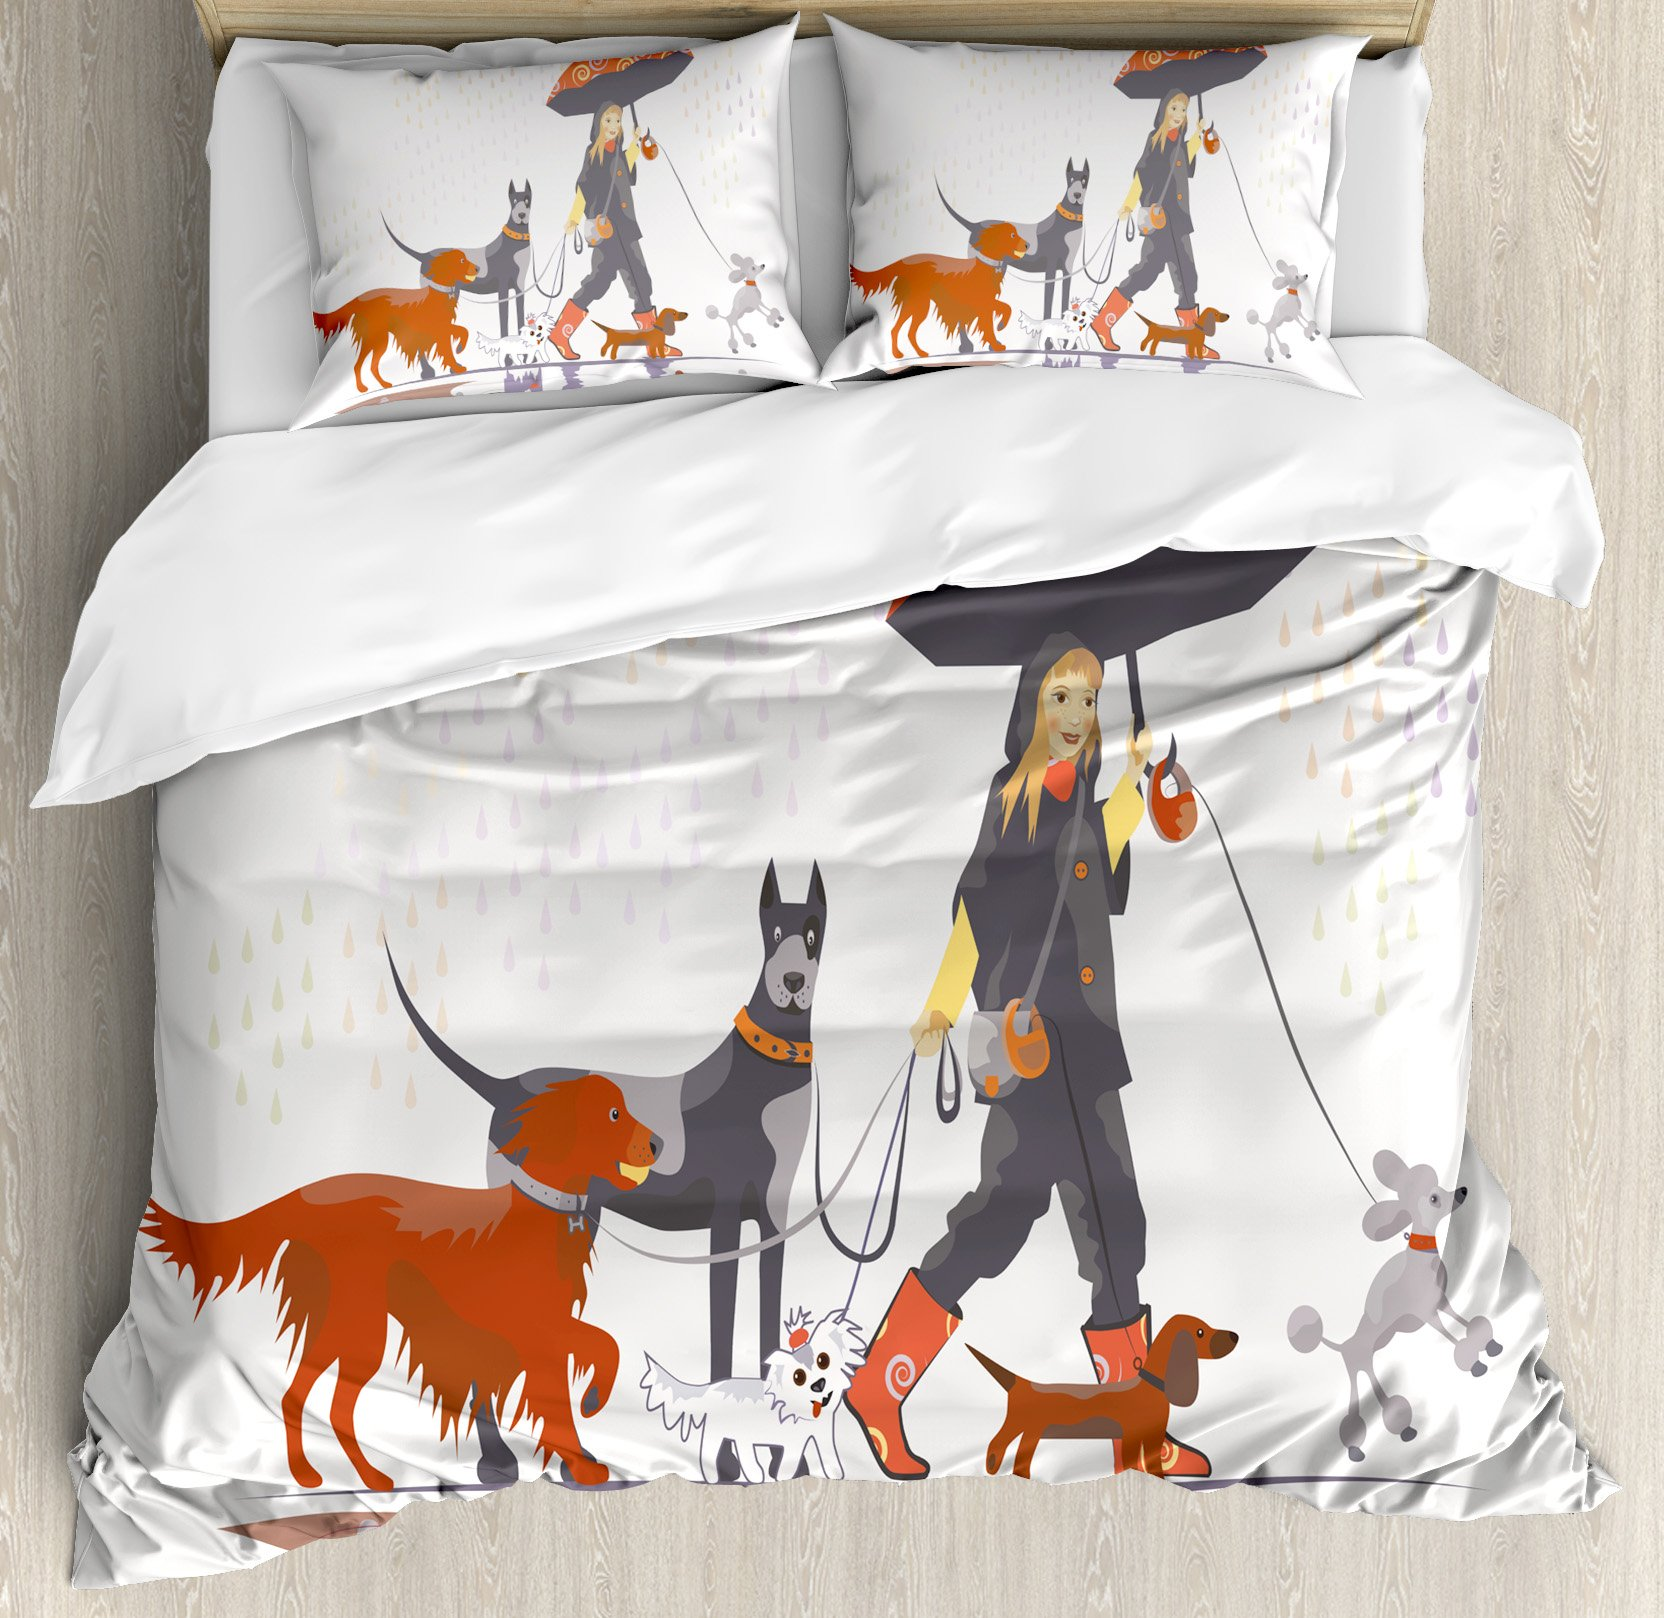 Ambesonne Dog Lover Decor Duvet Cover Set, Young Modern Girl Taking Pack of Dog for a Walk in The Rain Fun Joyful Times Artsy Print, 3 Piece Bedding Set with Pillow Shams, Queen/Full, Multi